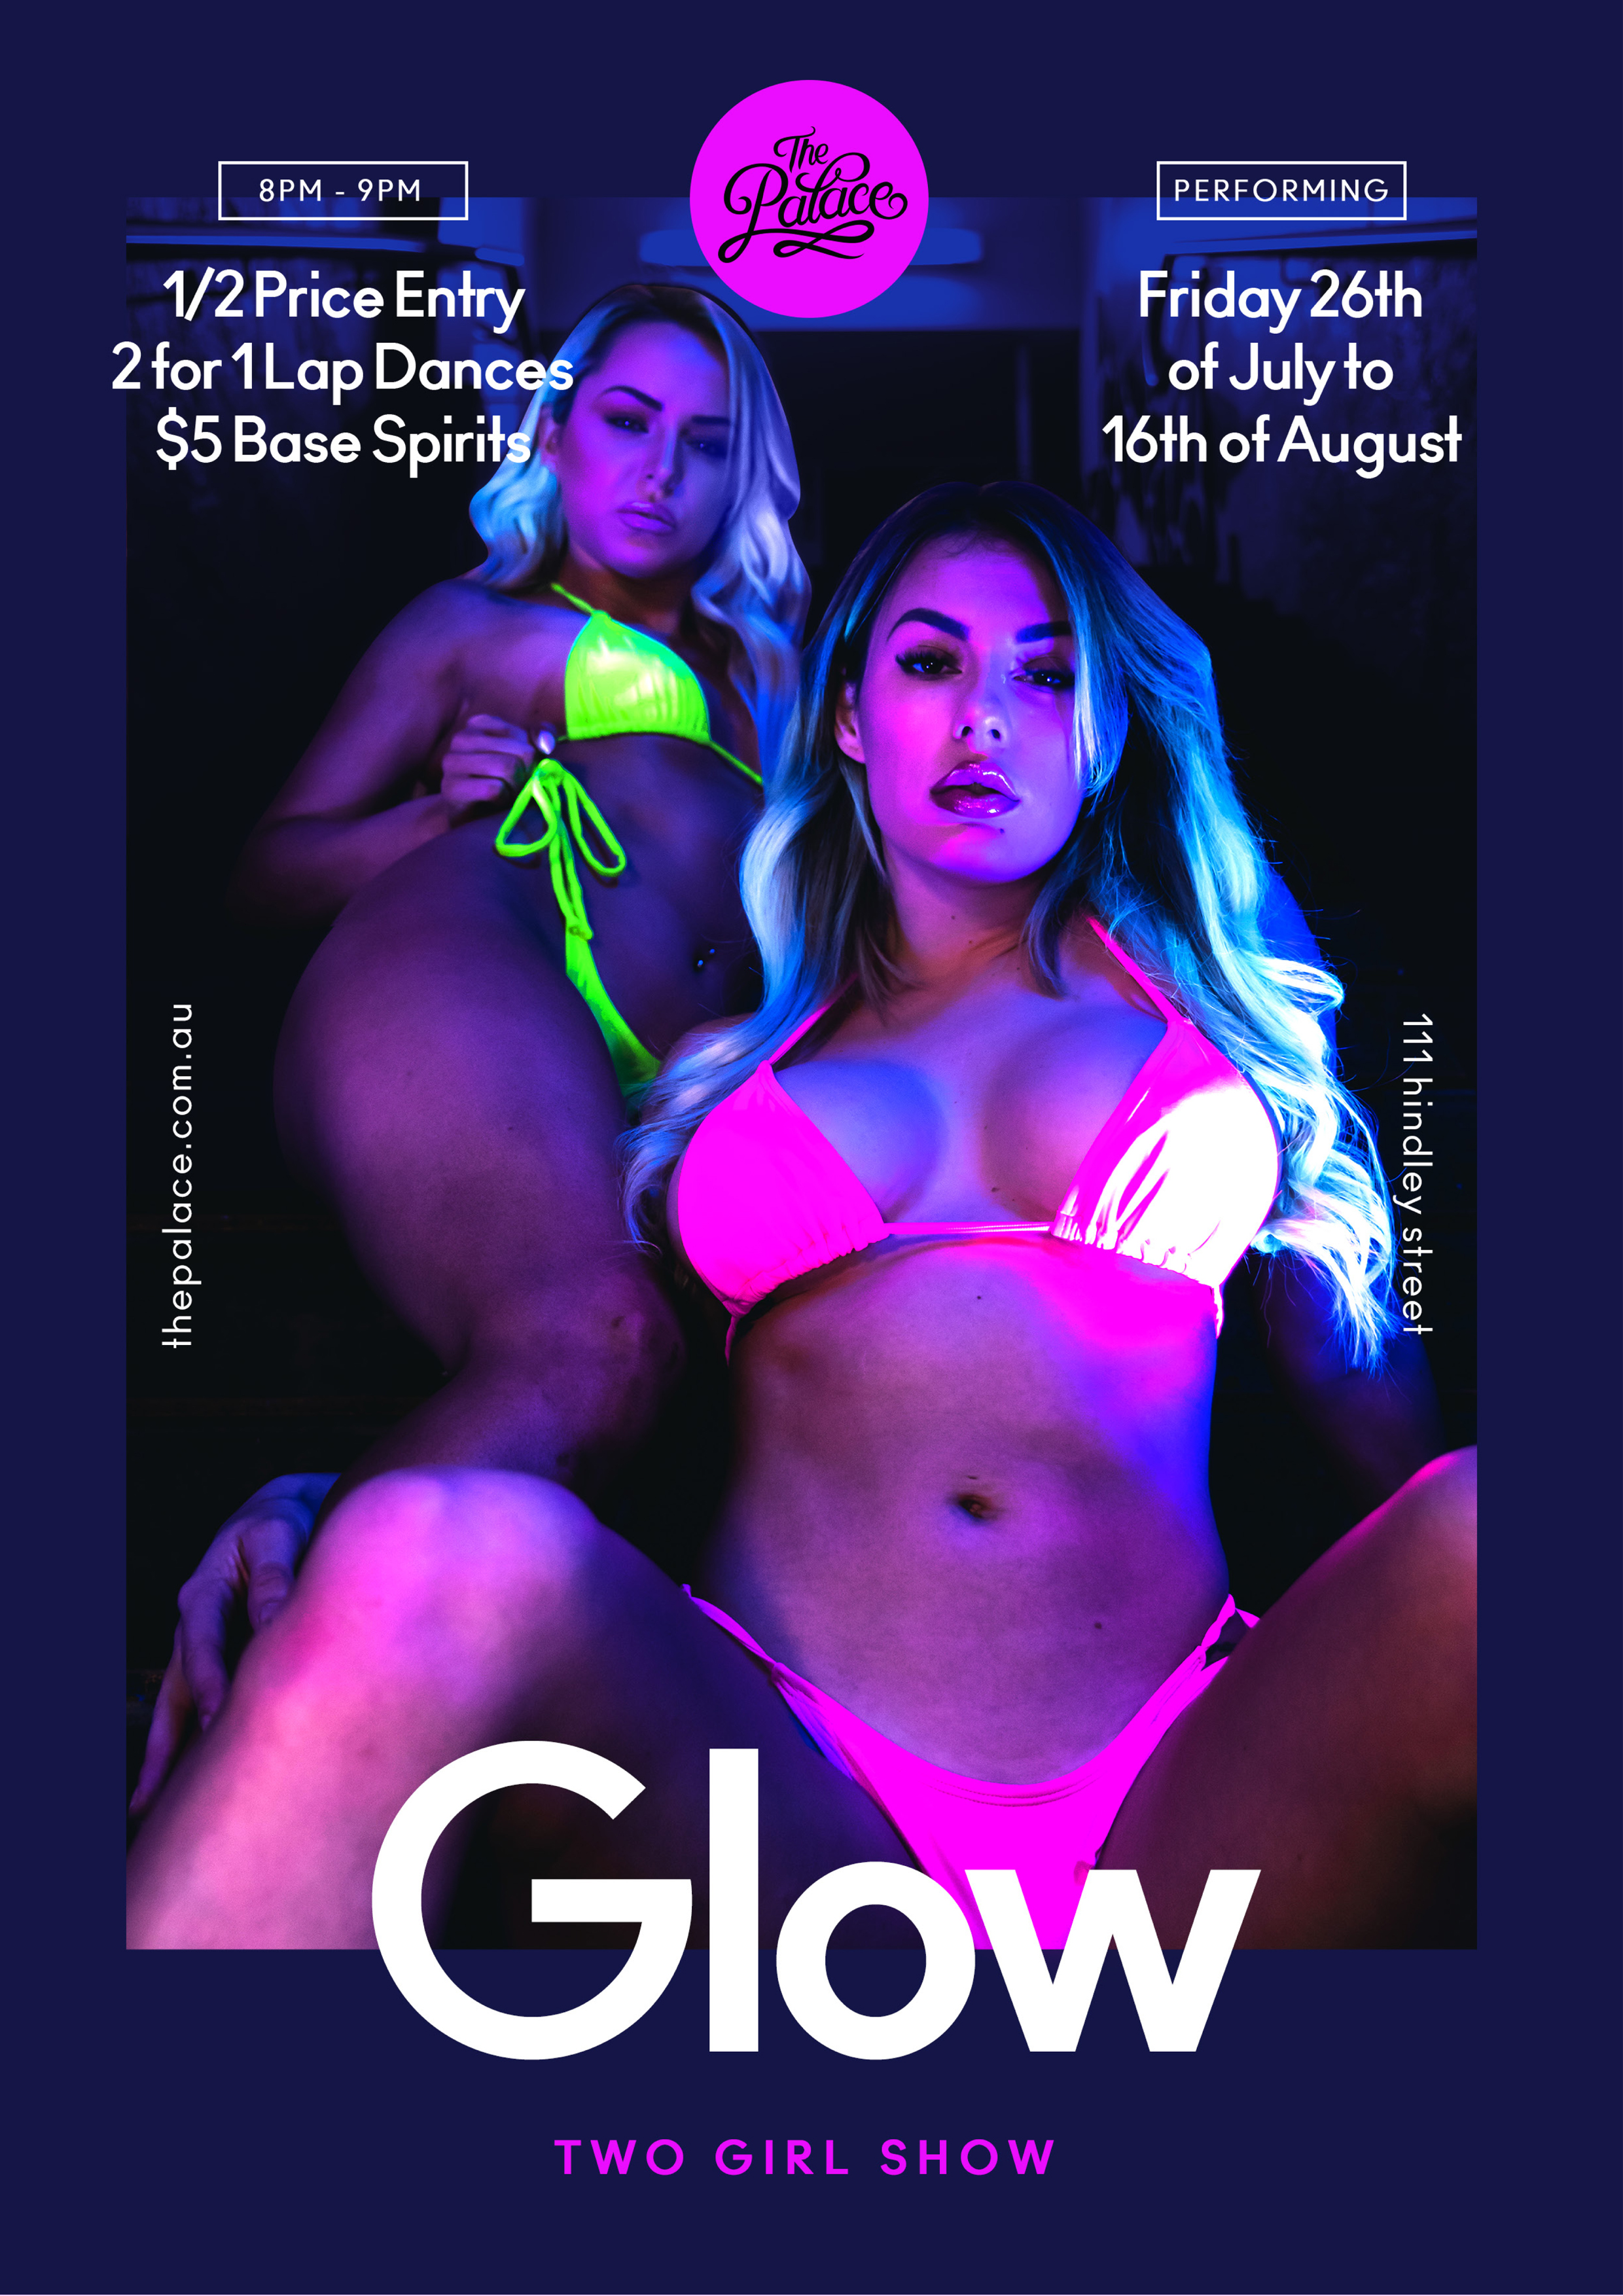 Glow, Australia's hottest Showgirls - The Palace Adelaide, 111 Hindley St, Adelaide